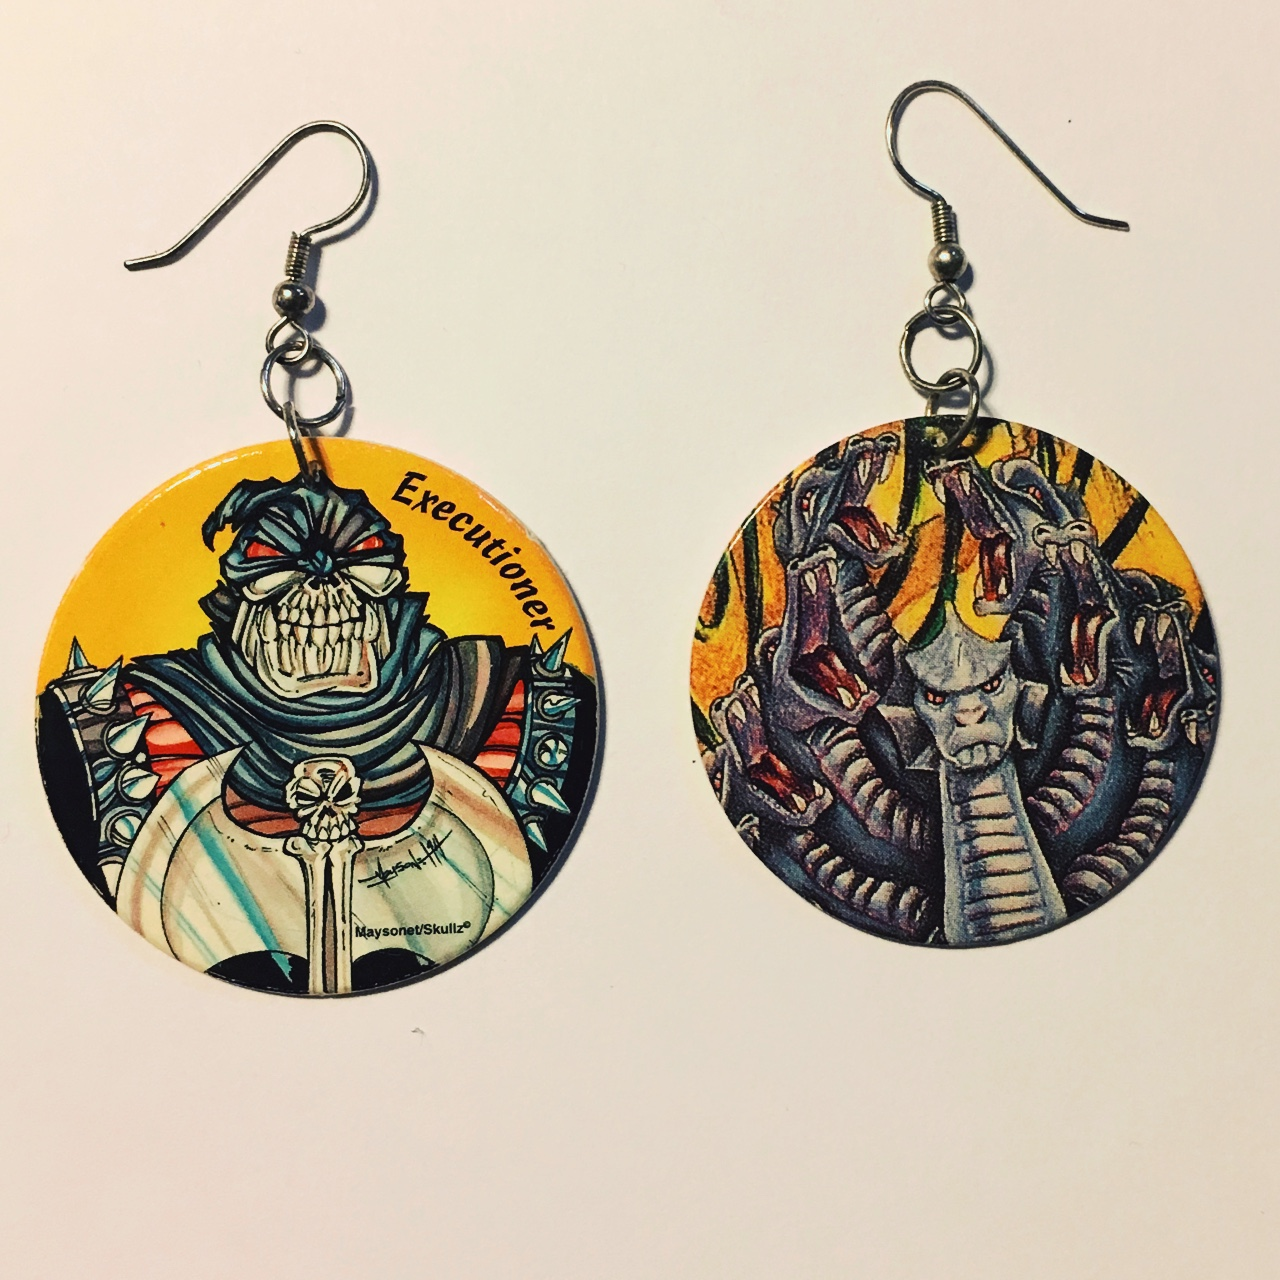 Executioner Pog Earrings made by me with vintage    - Depop